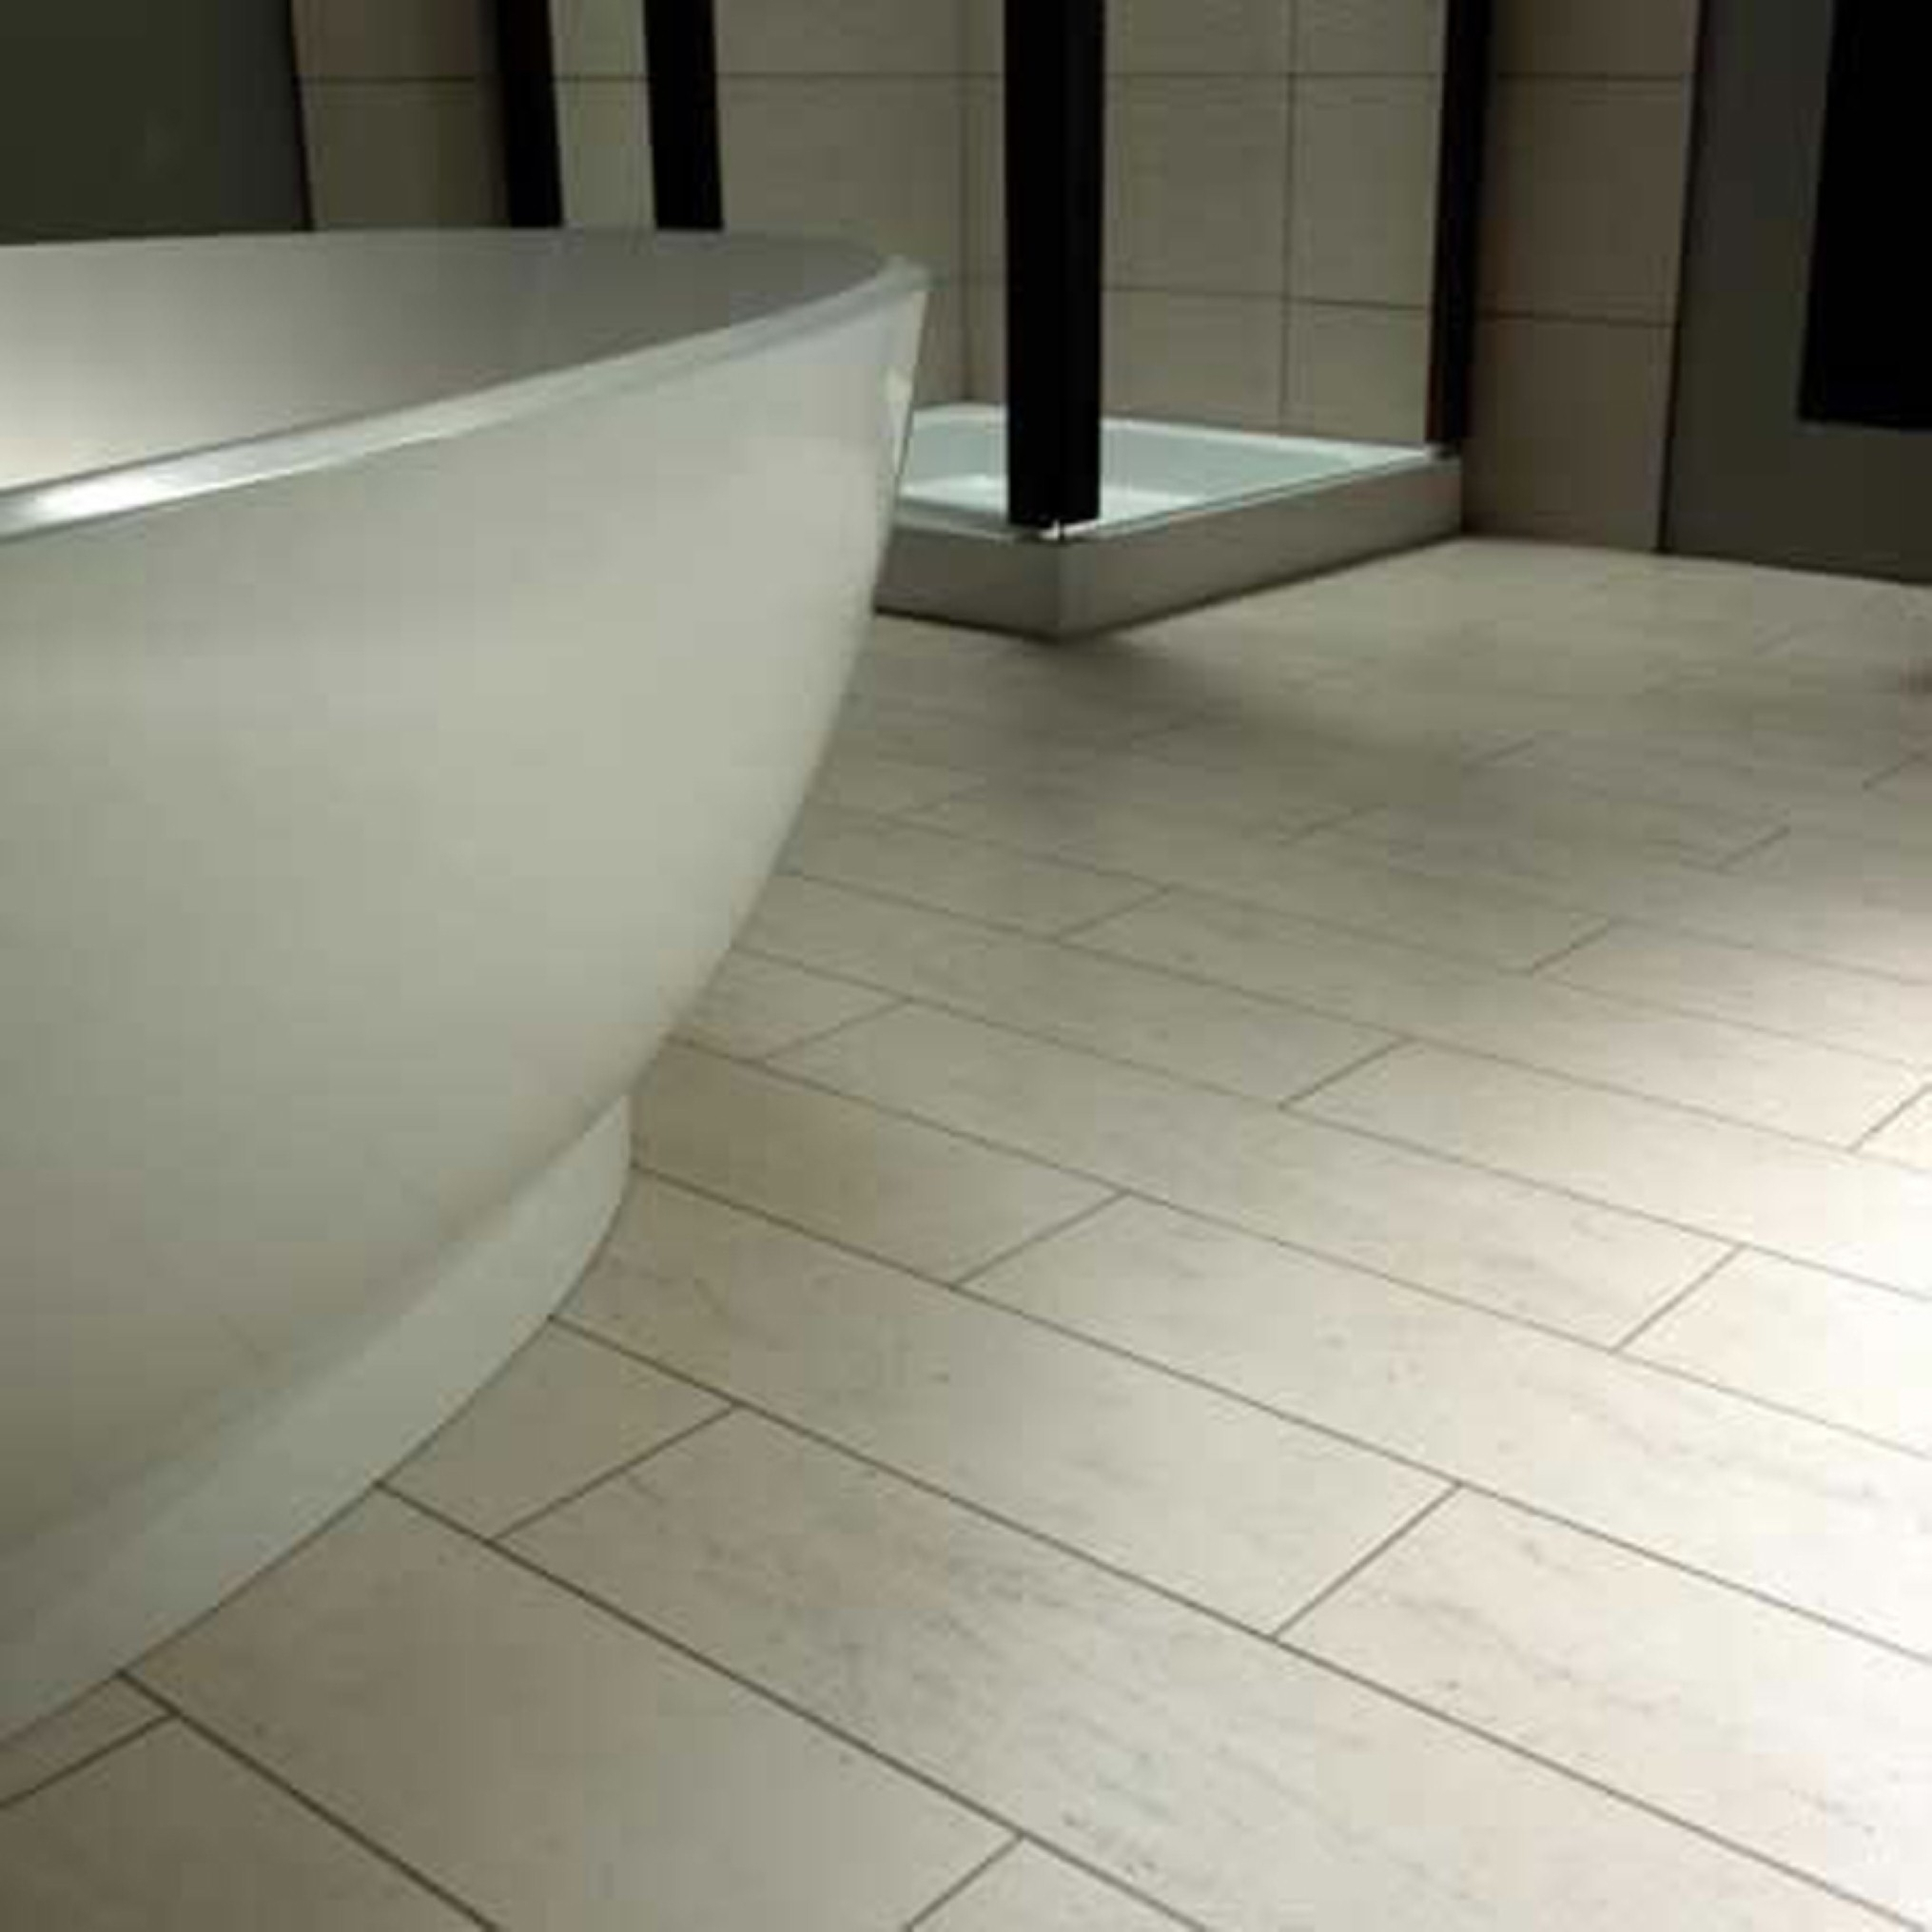 Smart Bathroom Flooring For Bathroom Design Ideas With Tens Of Pictures Of Prepossessing Bathroom To Inspire You (Image 8 of 29)